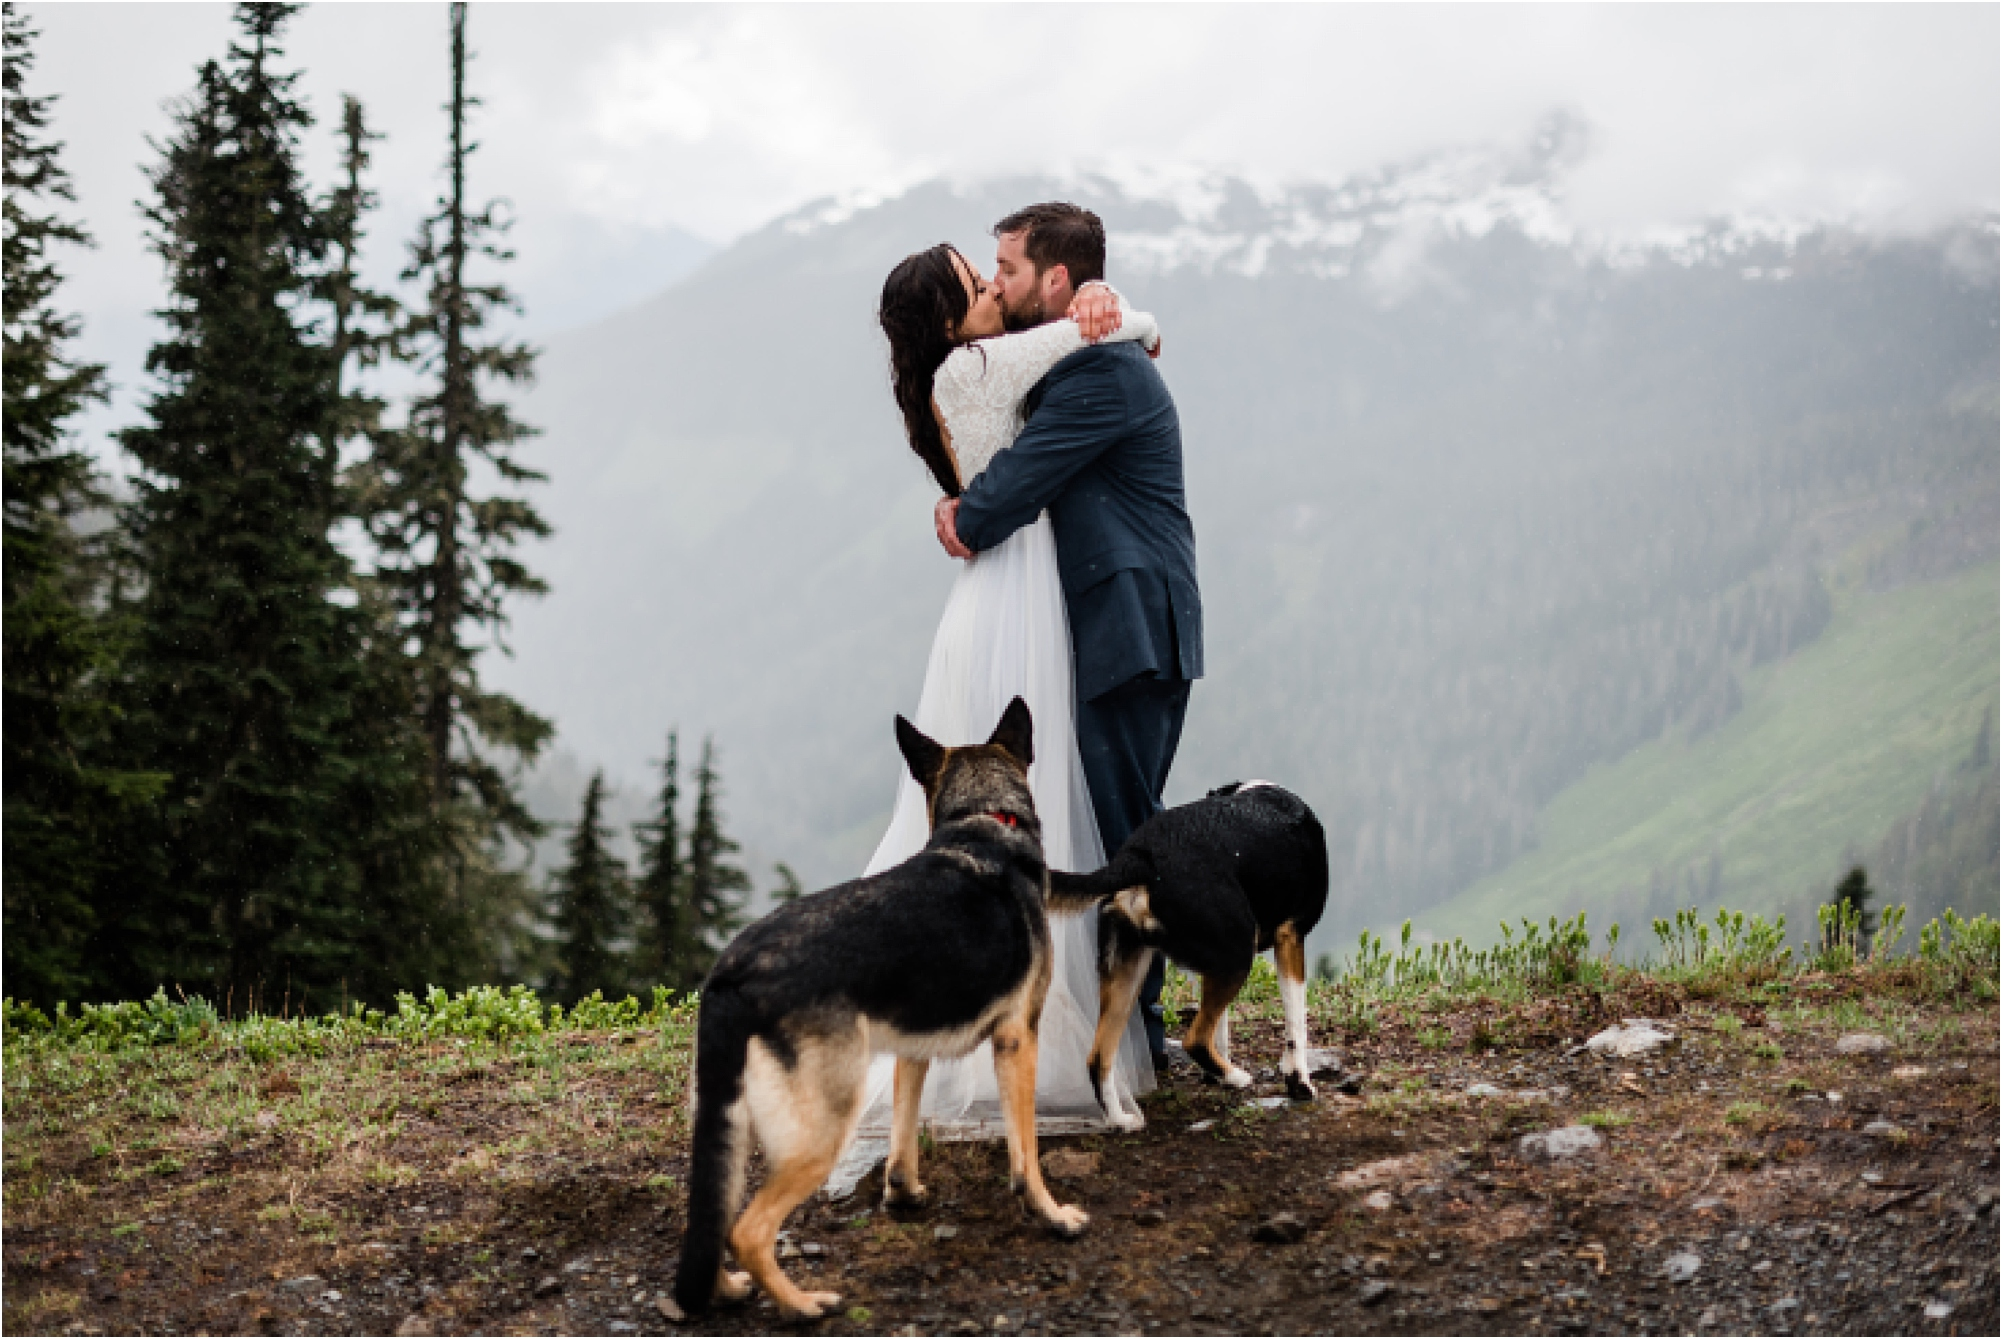 Christina & Tanner celebrating after their elopement ceremony on Mt. Baker. Image by Forthright Photo.